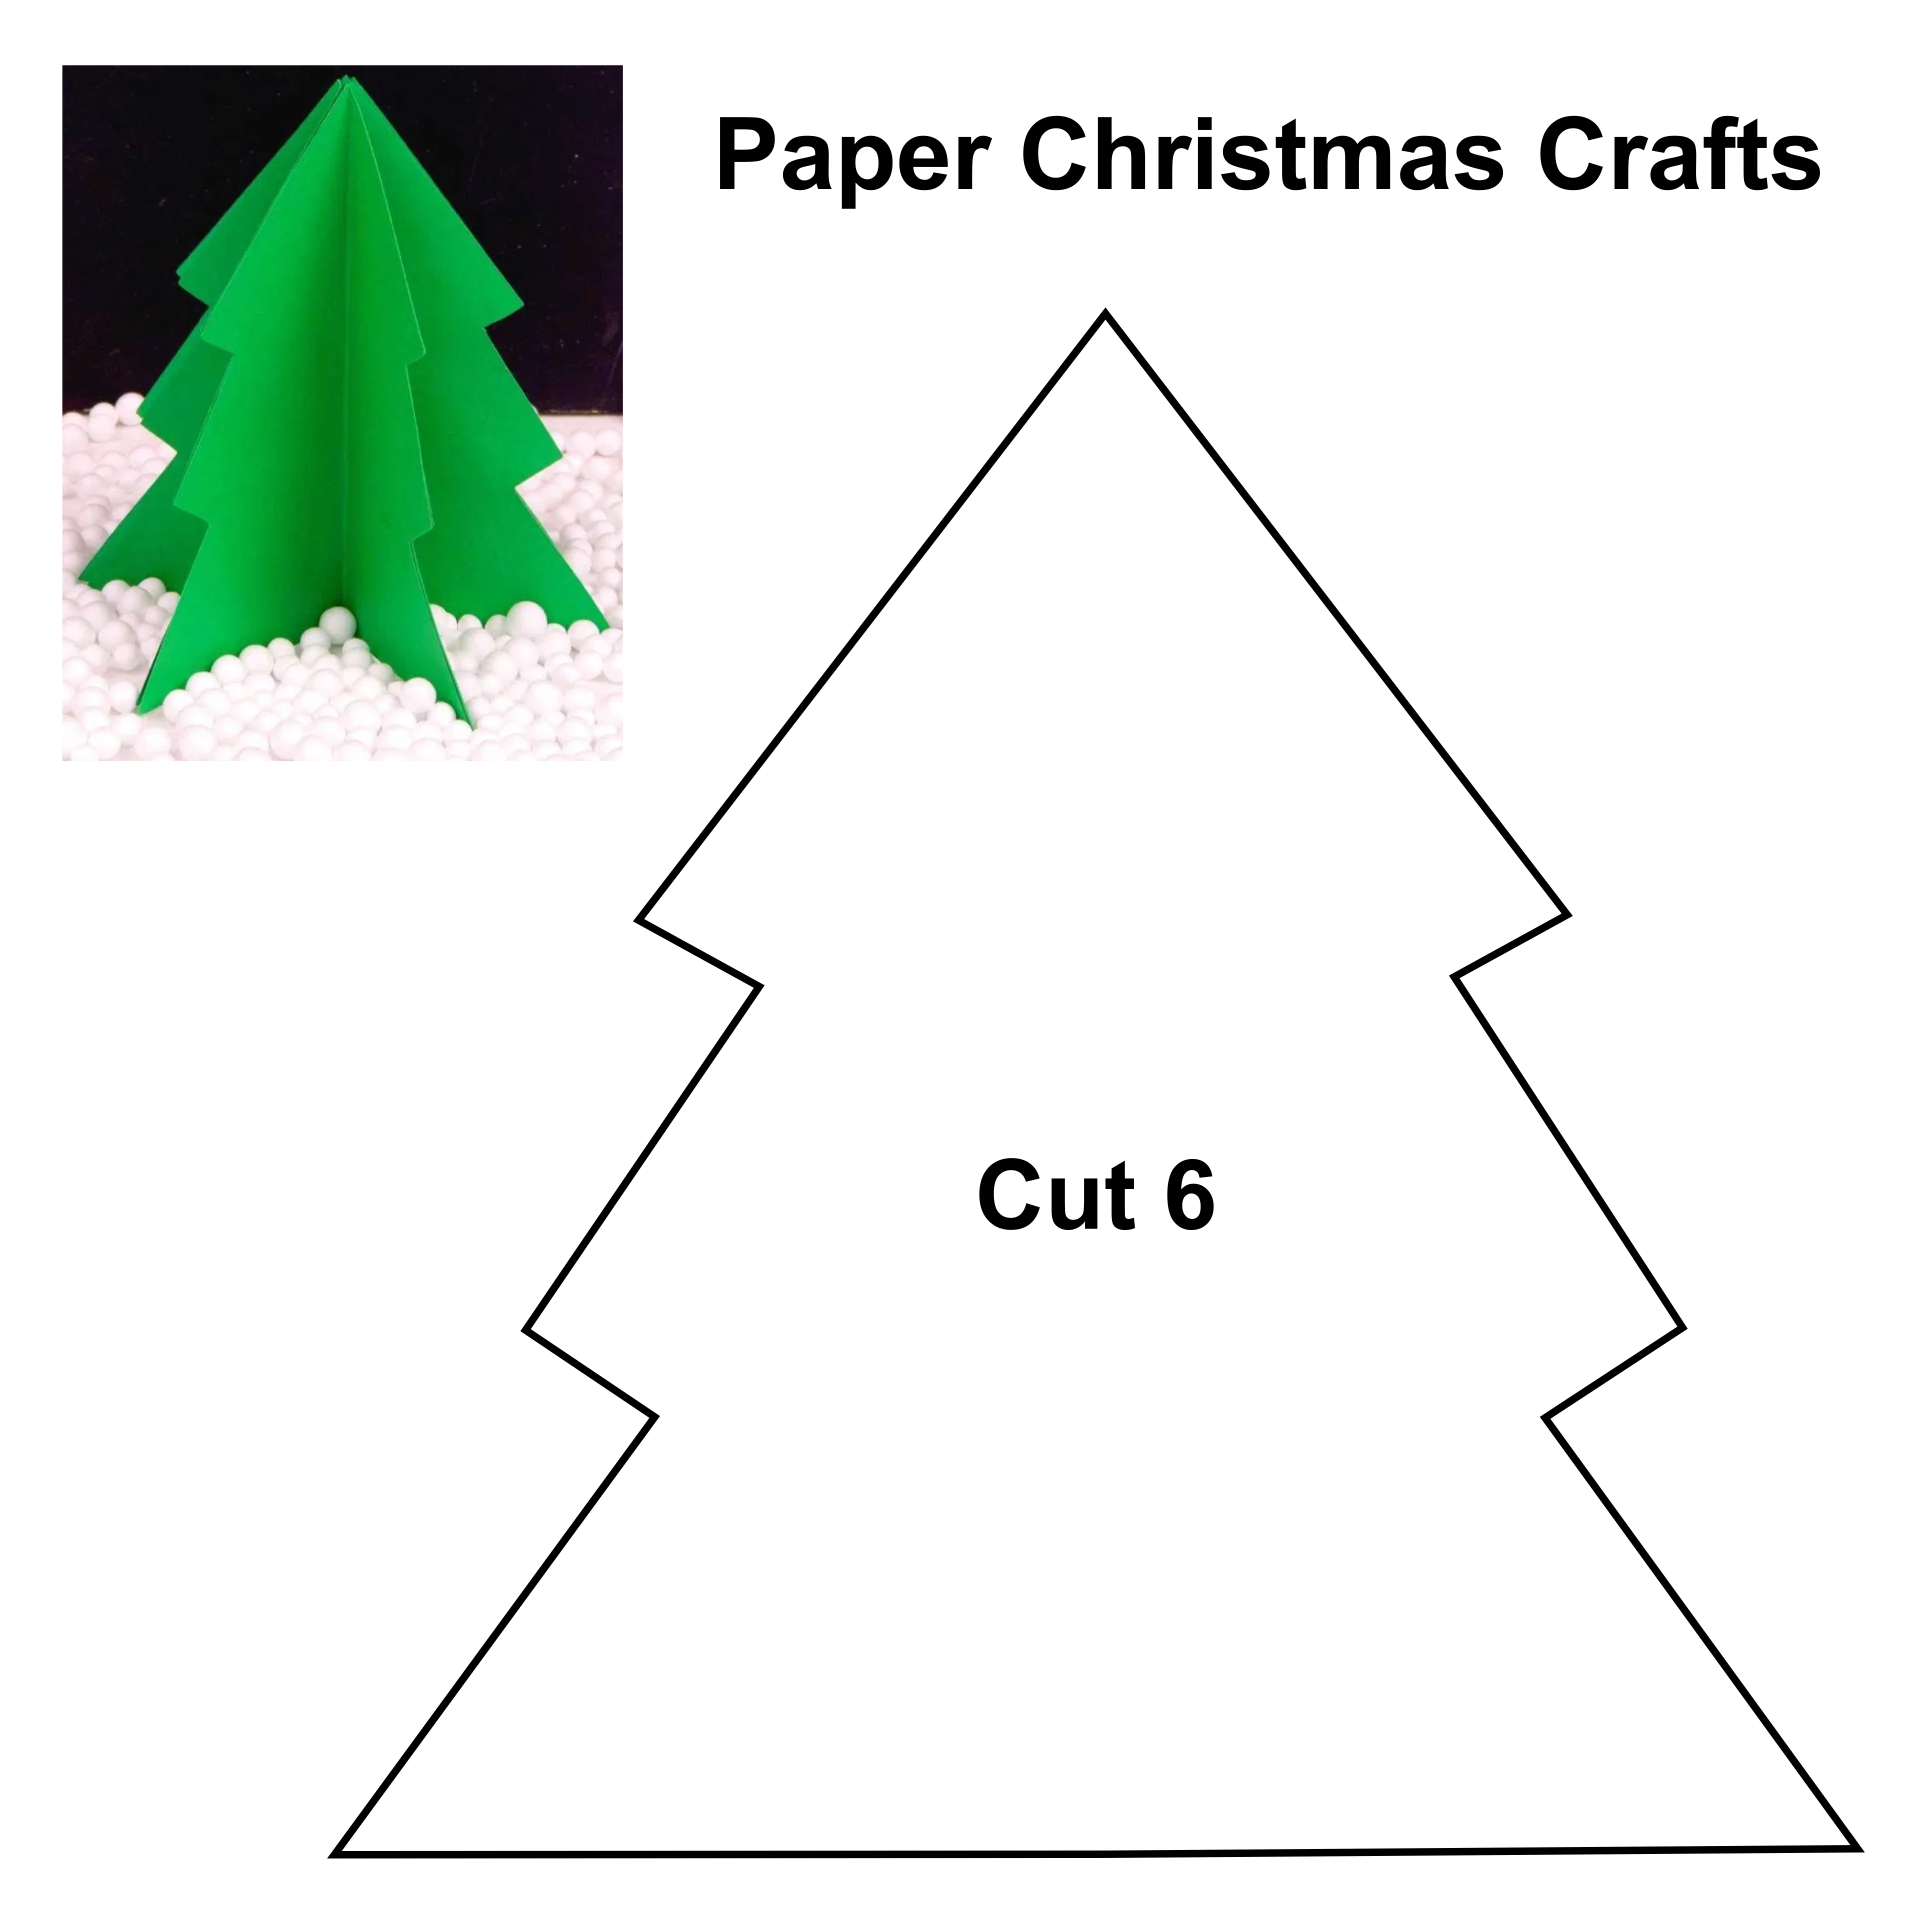 Crafts - Printable 3D Paper Christmas Crafts, Free Printable 3D Paper ...